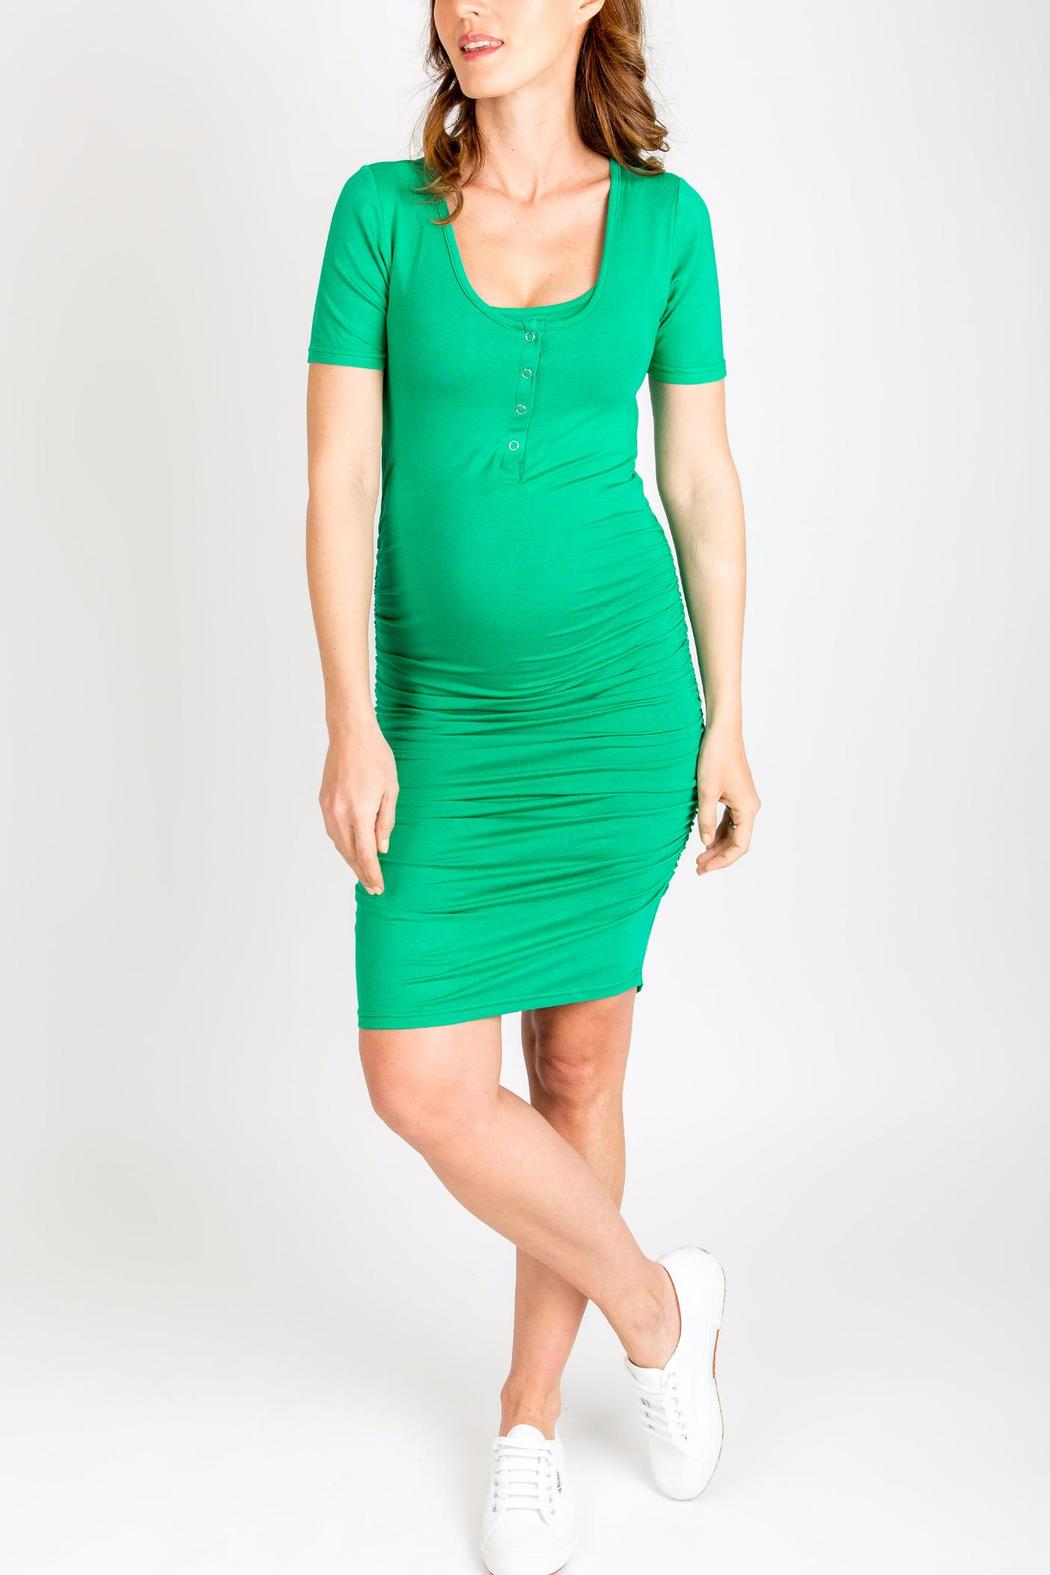 Nom maternity maternity and nursing dress from seattle by village nom maternity maternity and nursing dress front full image ombrellifo Gallery